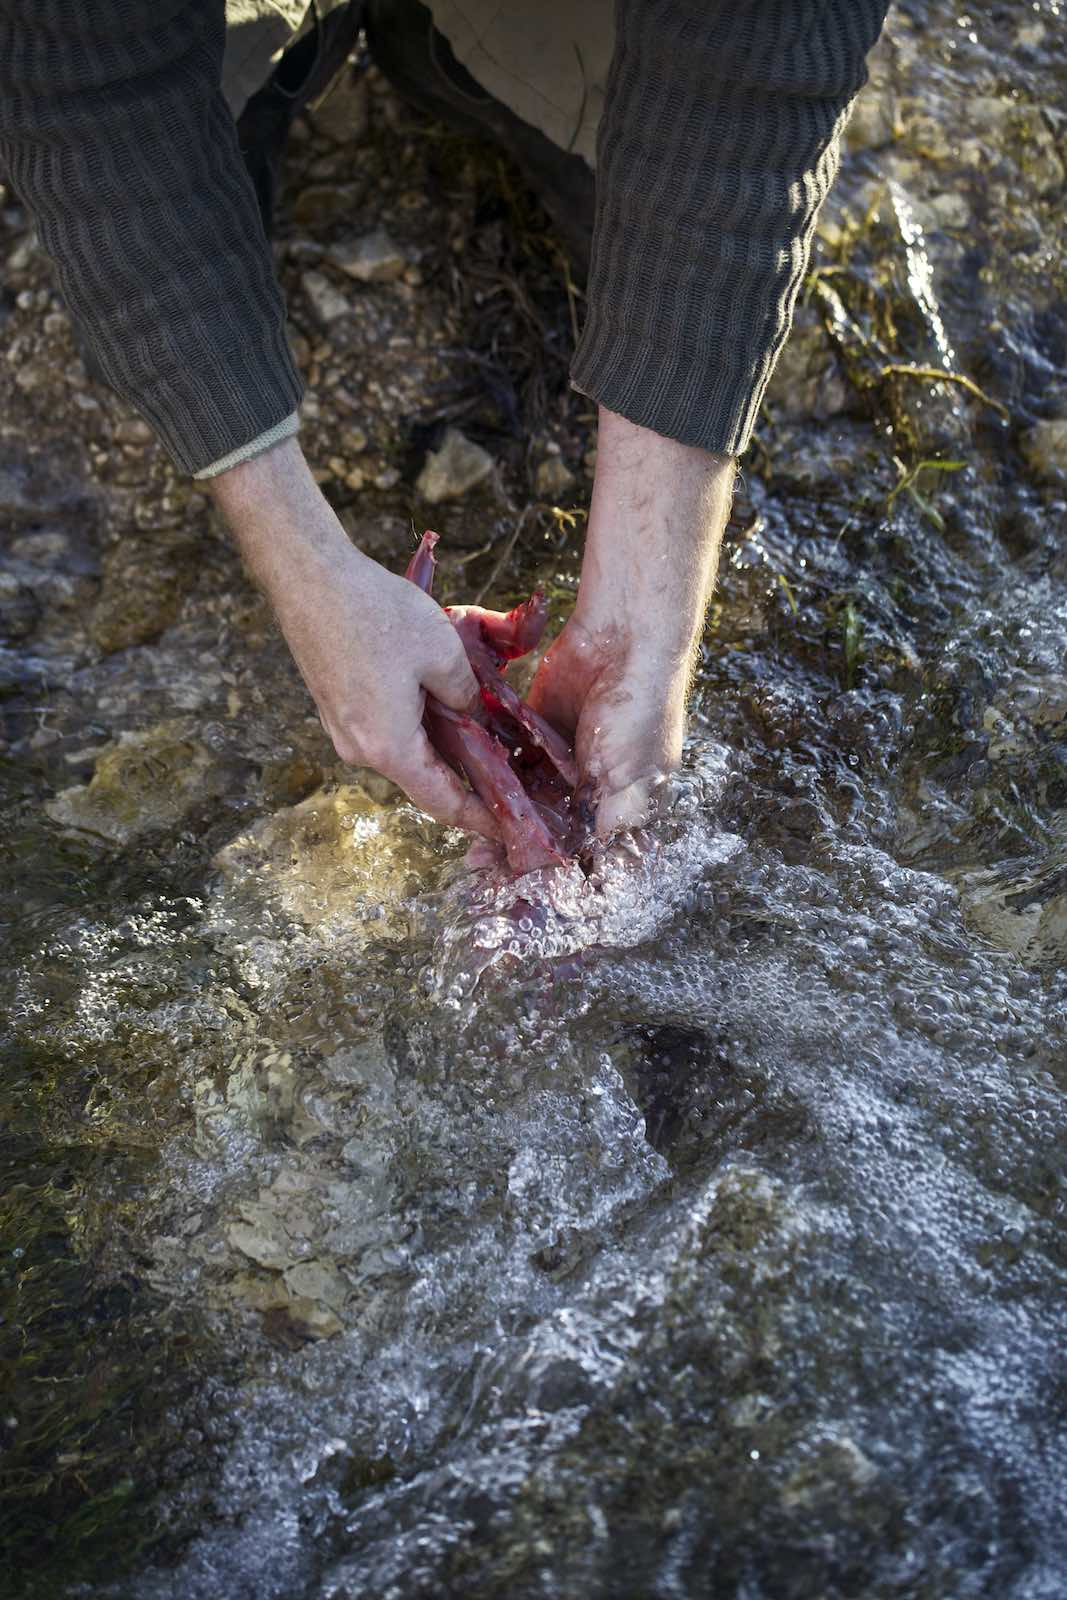 Jody Horton Photography - Hands washing a skinned animal in a stream.